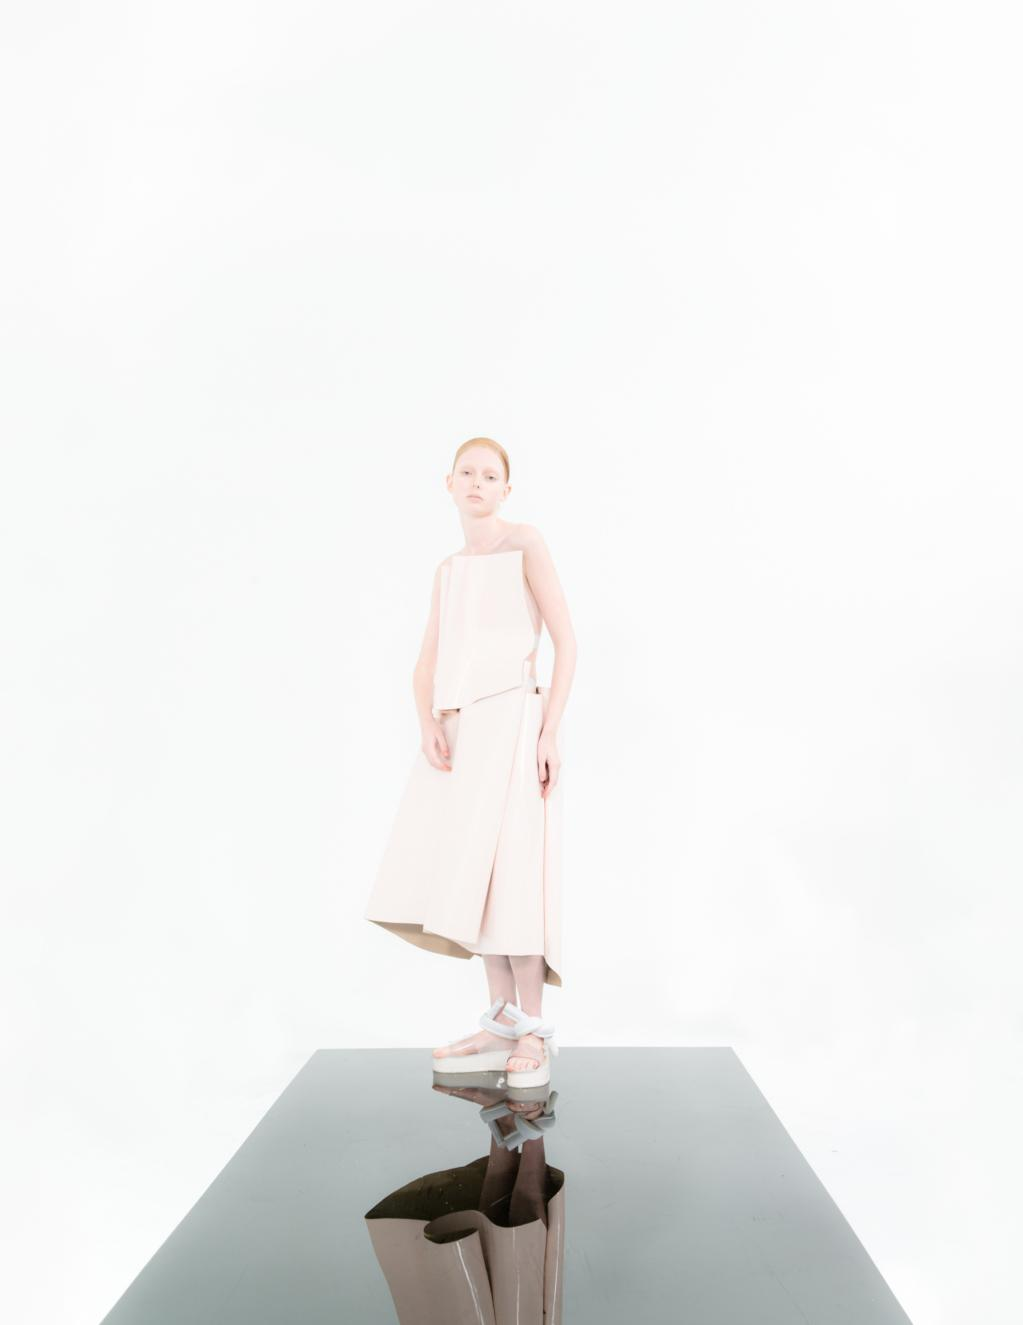 In love and war with designer Melitta Beaumeister and photographer Paul Jung. http://t.co/Pd5TLhkq2T http://t.co/jxbkGtqlOk